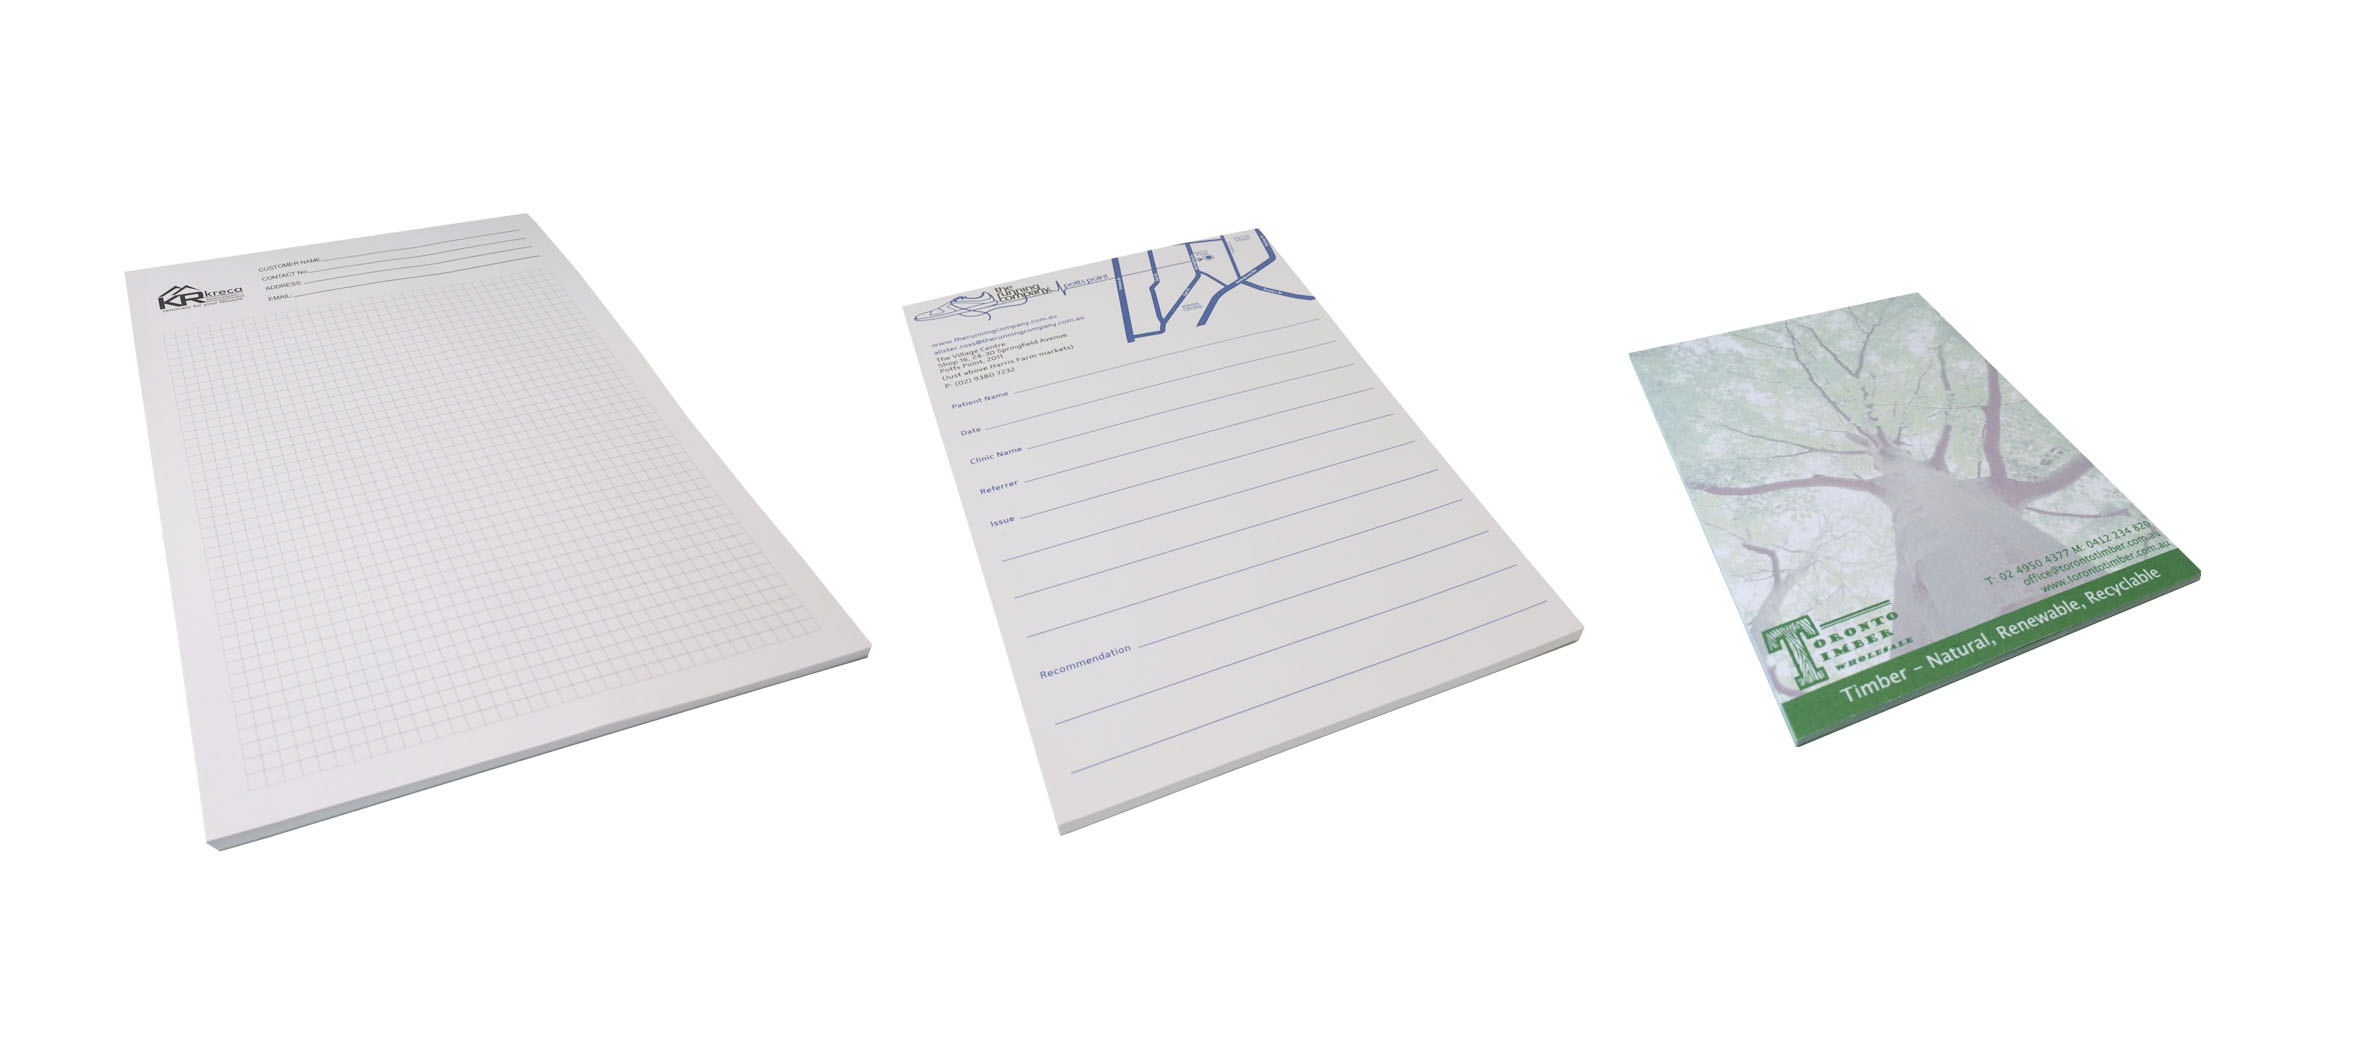 Leeds Pedova Writing Pad, Custom Printed Pedova Writing Pad. As low as ...